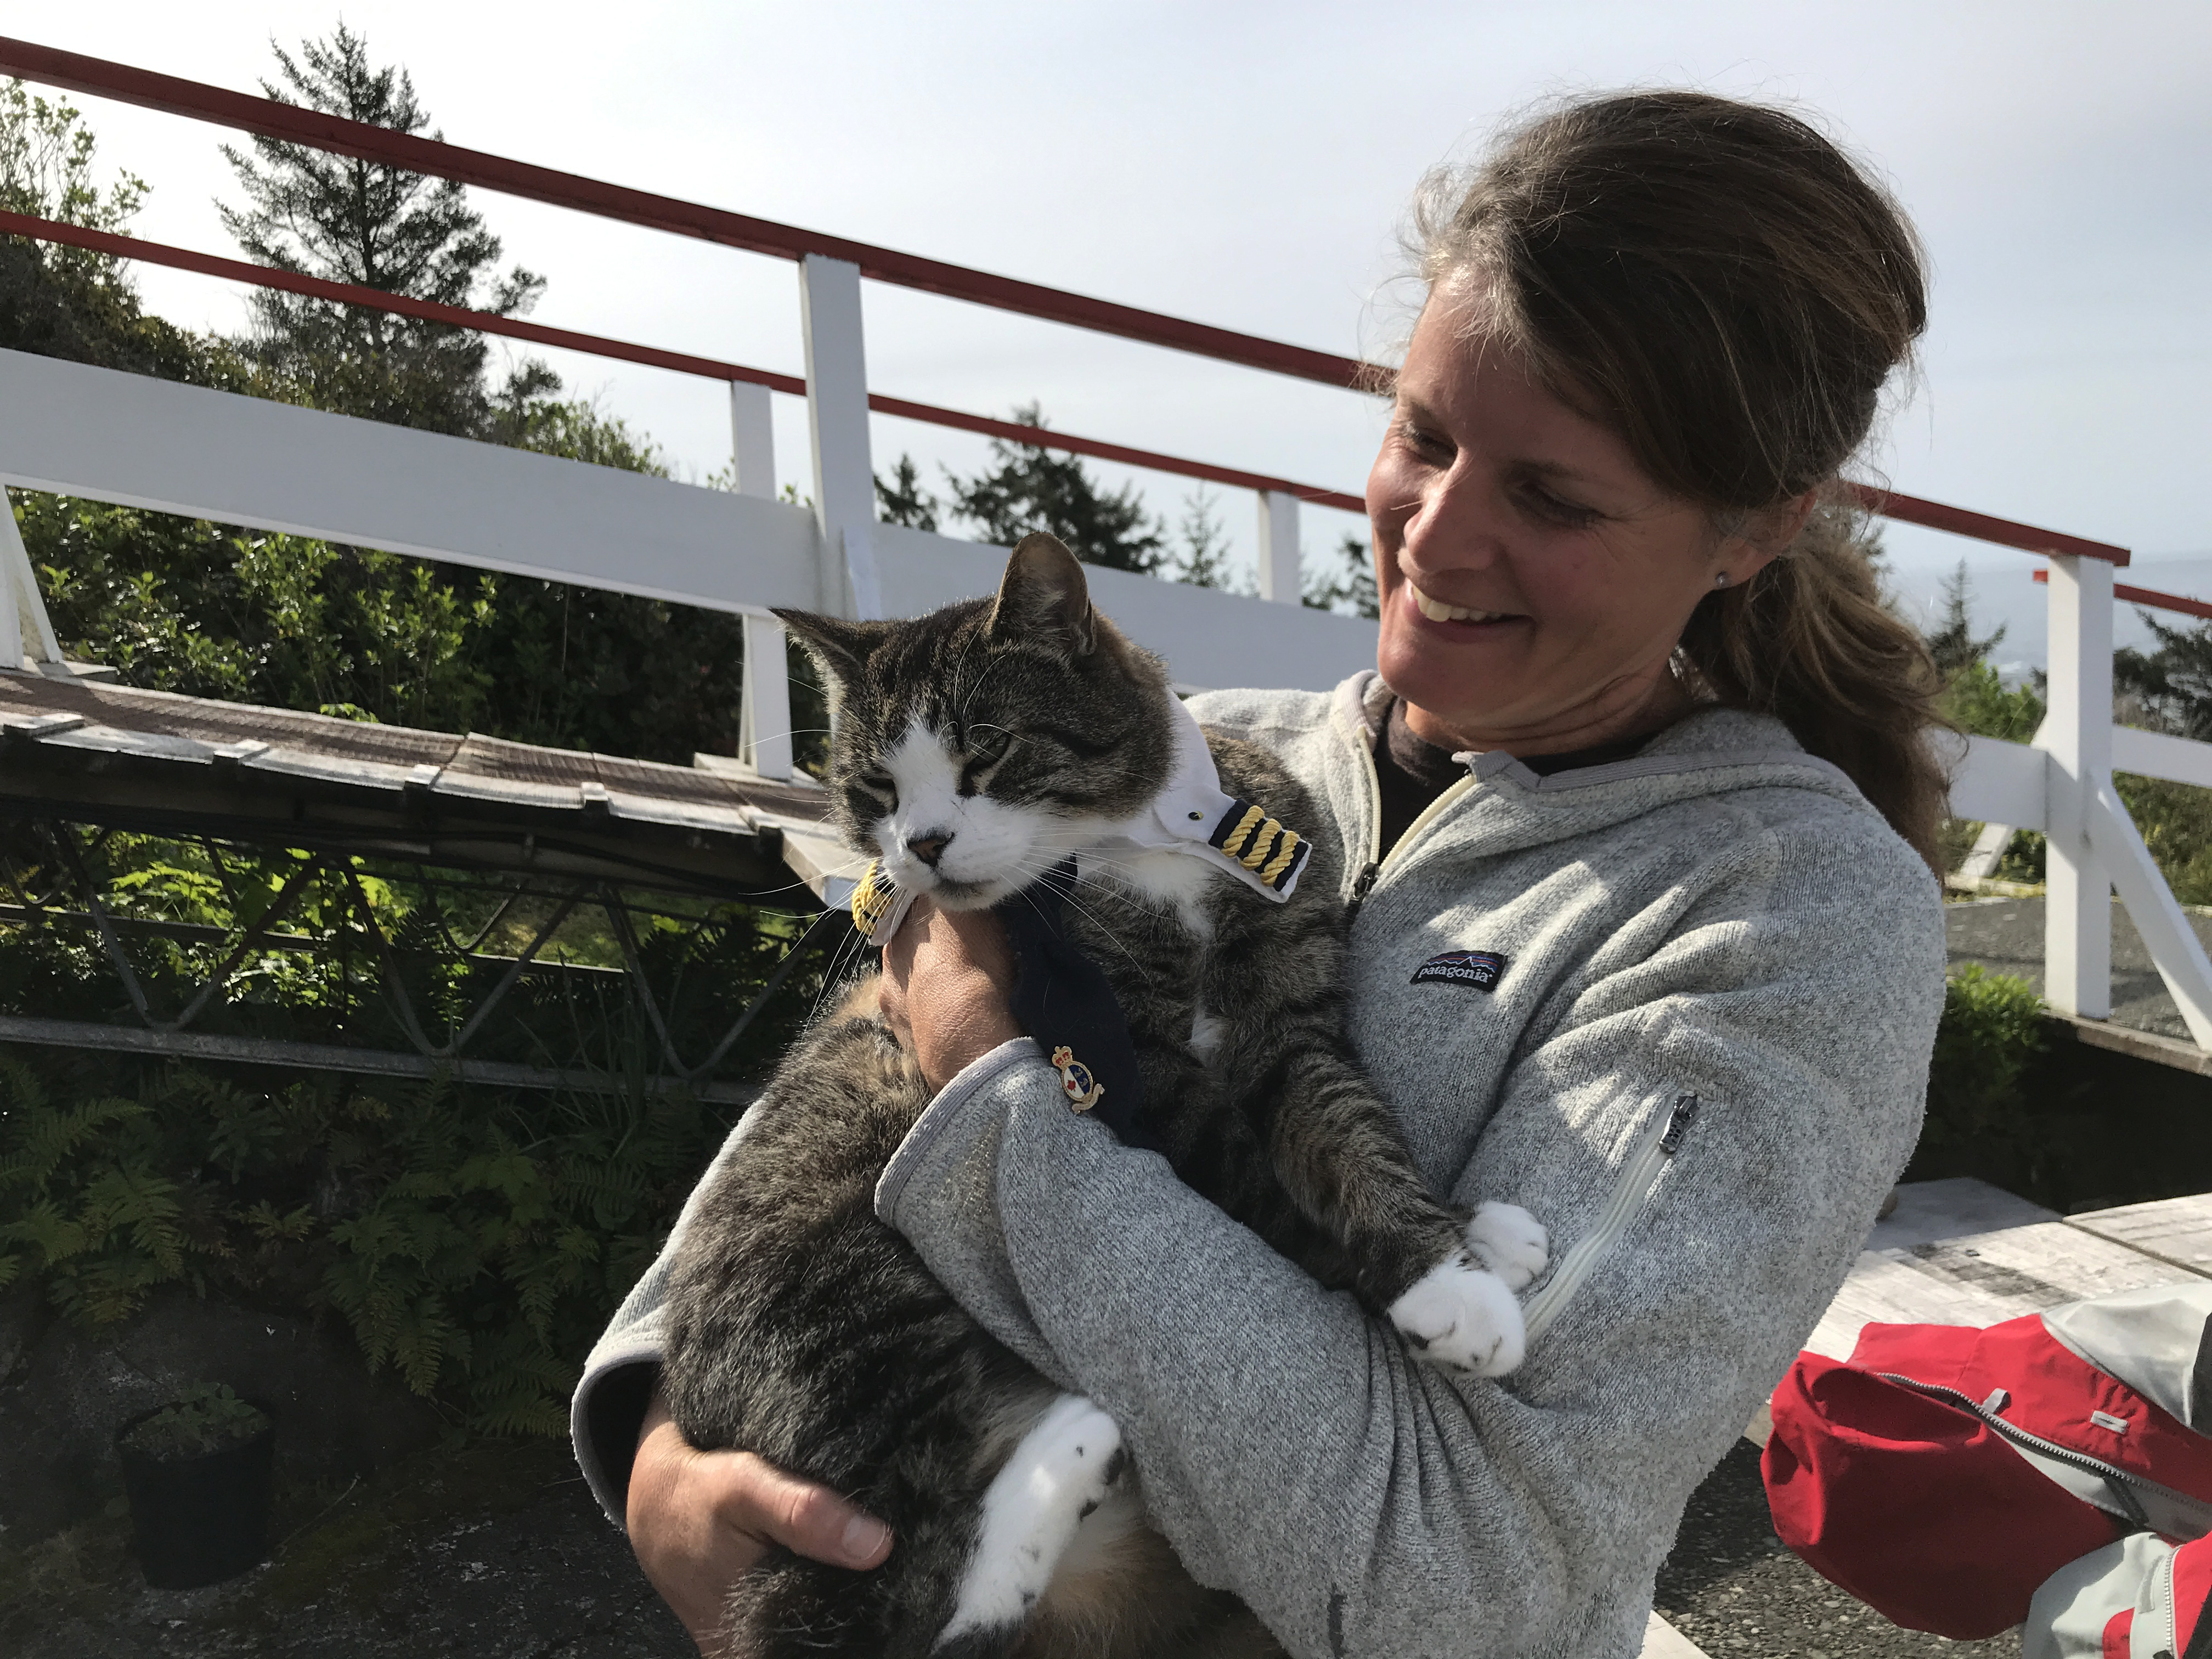 Zacharuk's cat Cash enjoys roaming the grounds of the lighthouse, and even has his own Canadian Coast Guard uniform. (Megan Thomas/CBC)